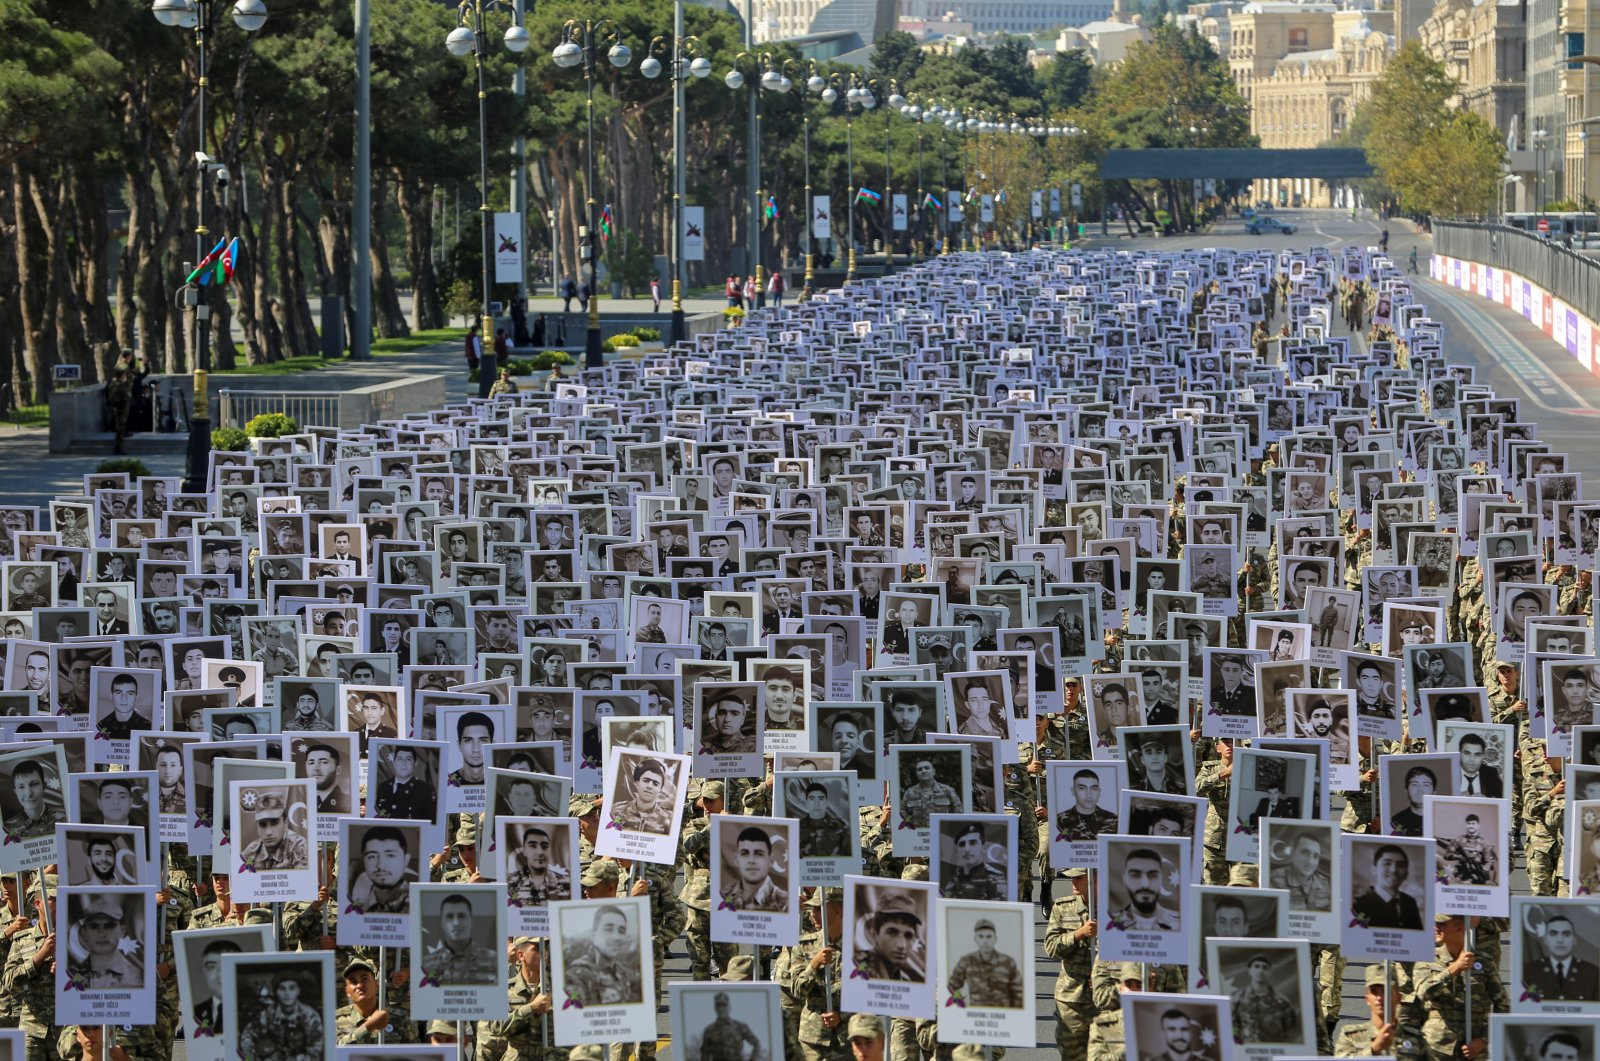 Soldiers carry portraits of Azerbaijani service members killed in the recent conflict over the region of Nagorno-Karabakh during a commemoration on its first anniversary, in Baku, Azerbaijan, Sept. 27, 2021. (Reuters Photo)